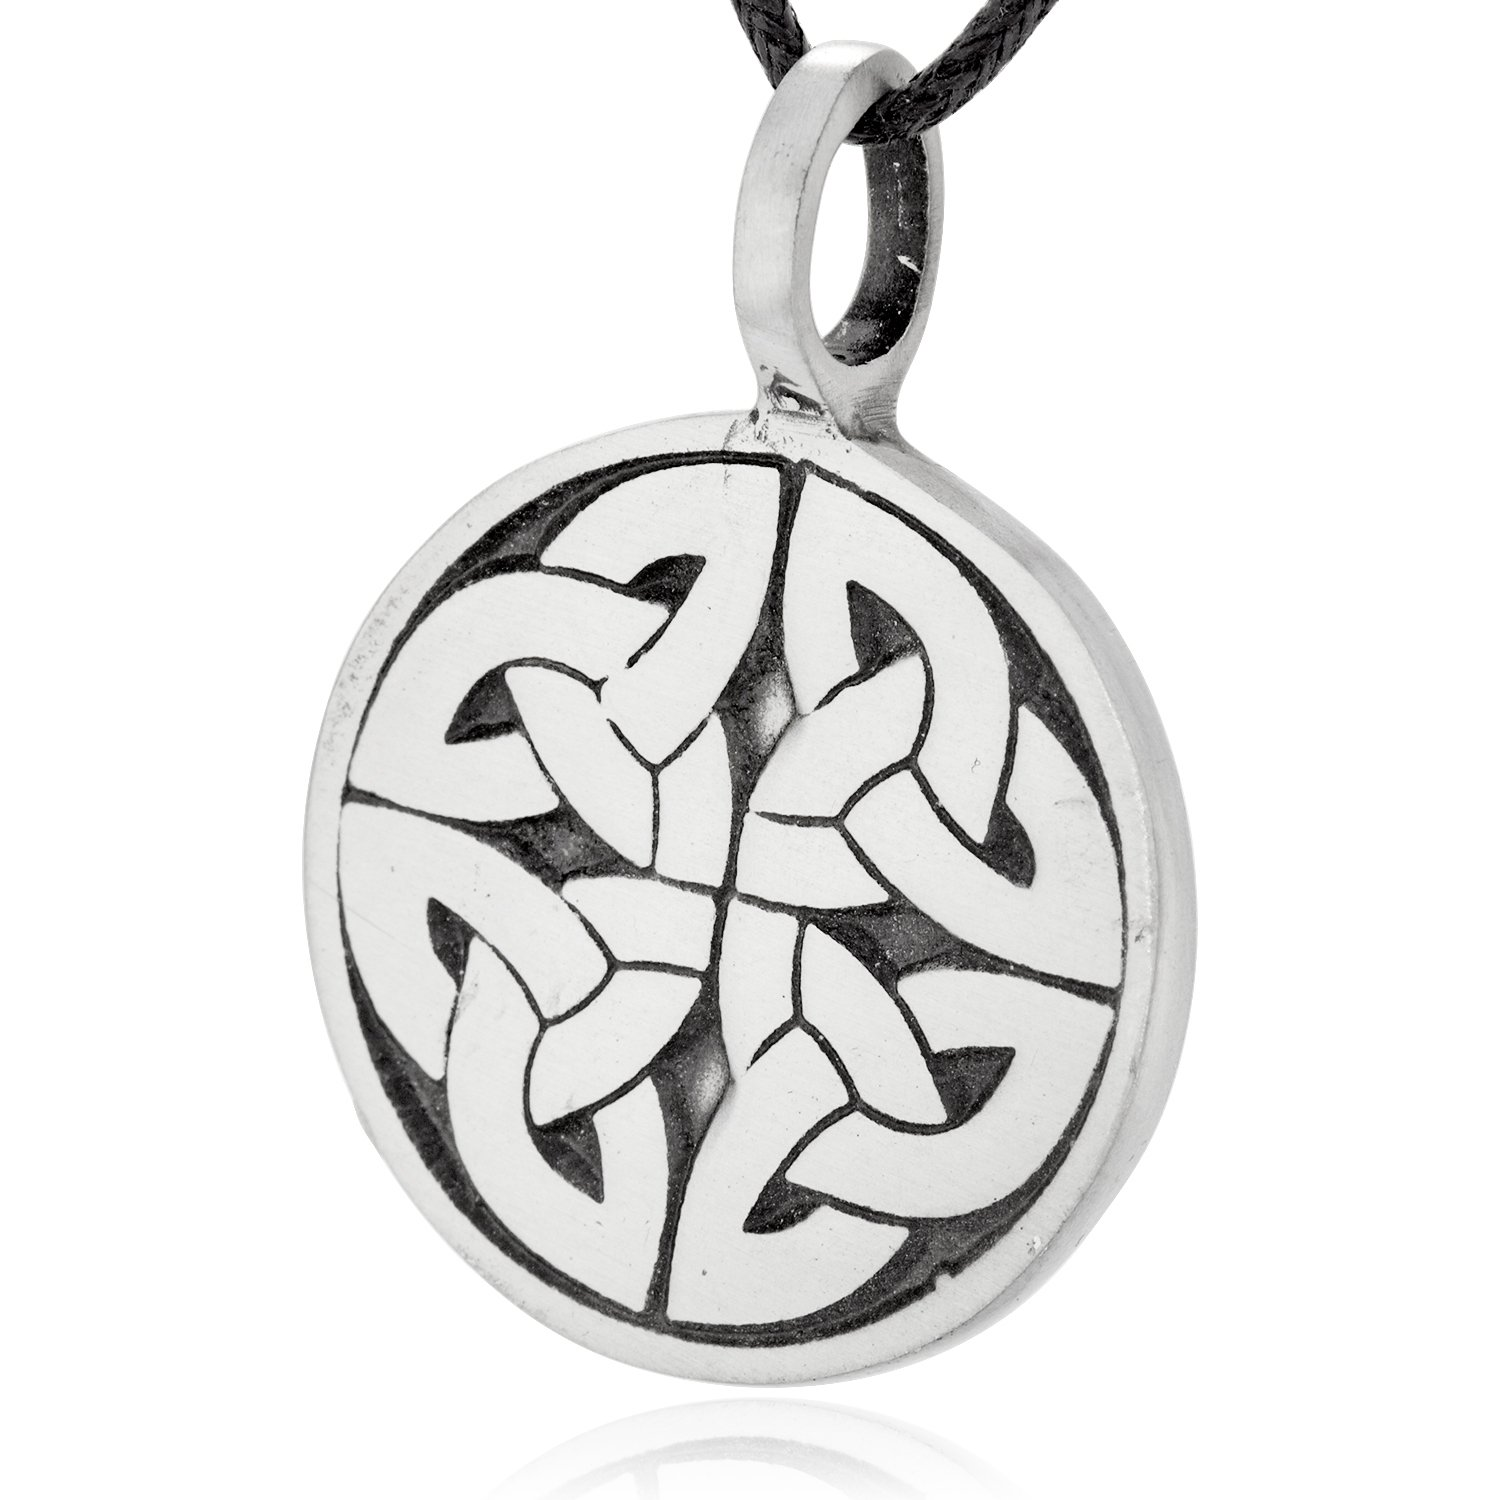 Dan's Jewelers Engraved Celtic Trinity Knot Necklace Pendant + Silver Plated Clasp, Fine Pewter Jewelry by Dan's Jewelers (Image #2)